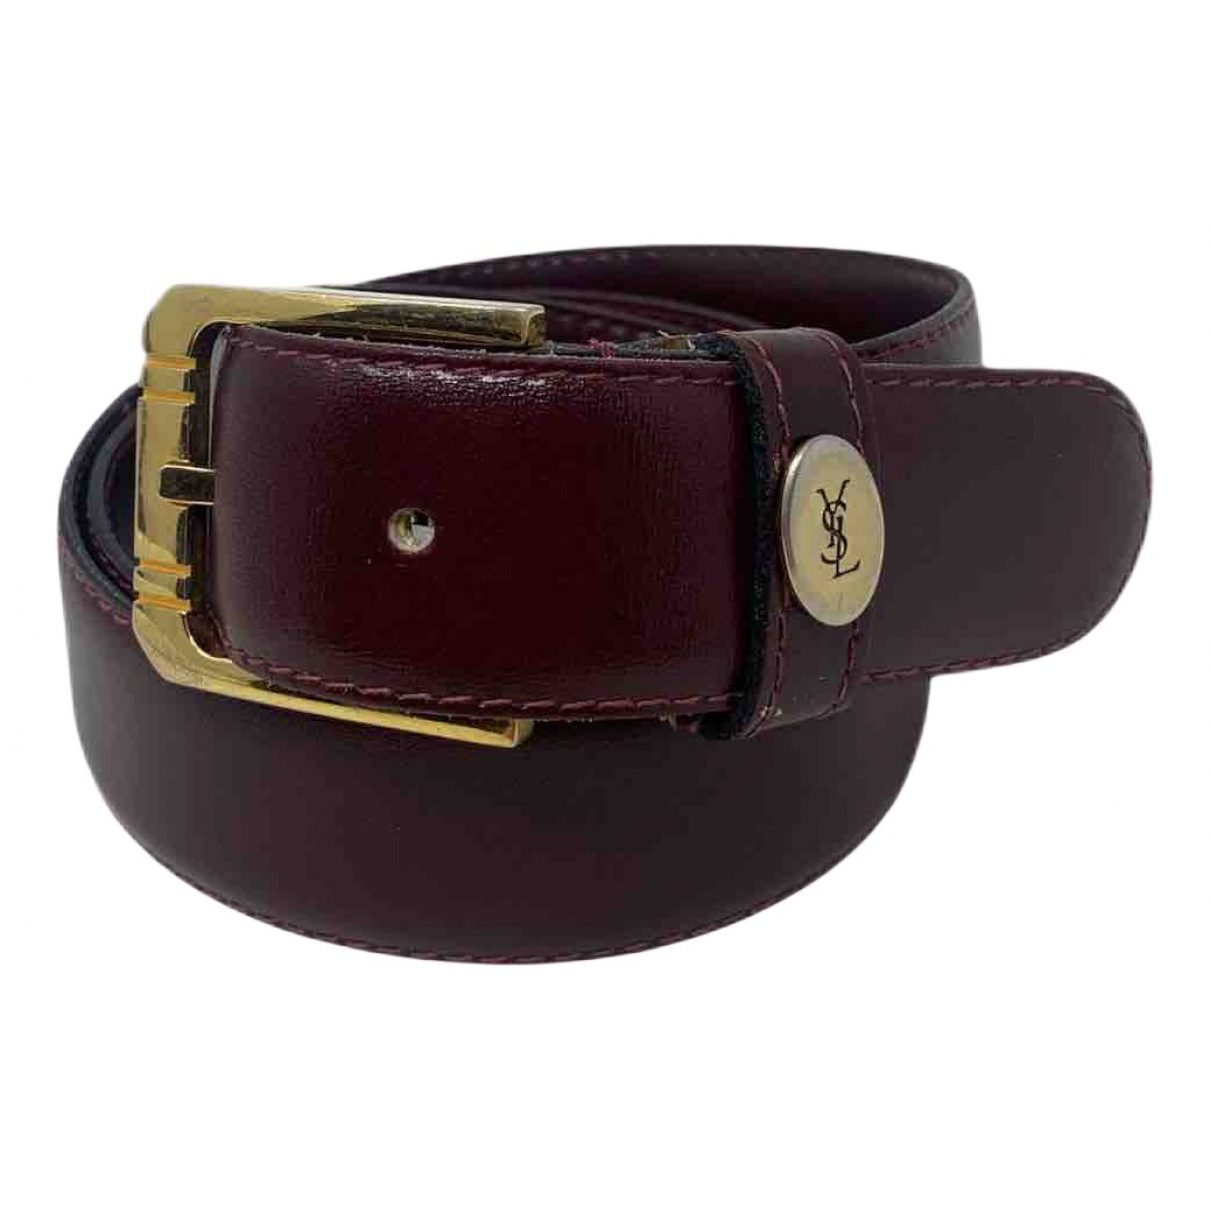 Yves Saint Laurent N Burgundy Leather belt for Women 80 cm